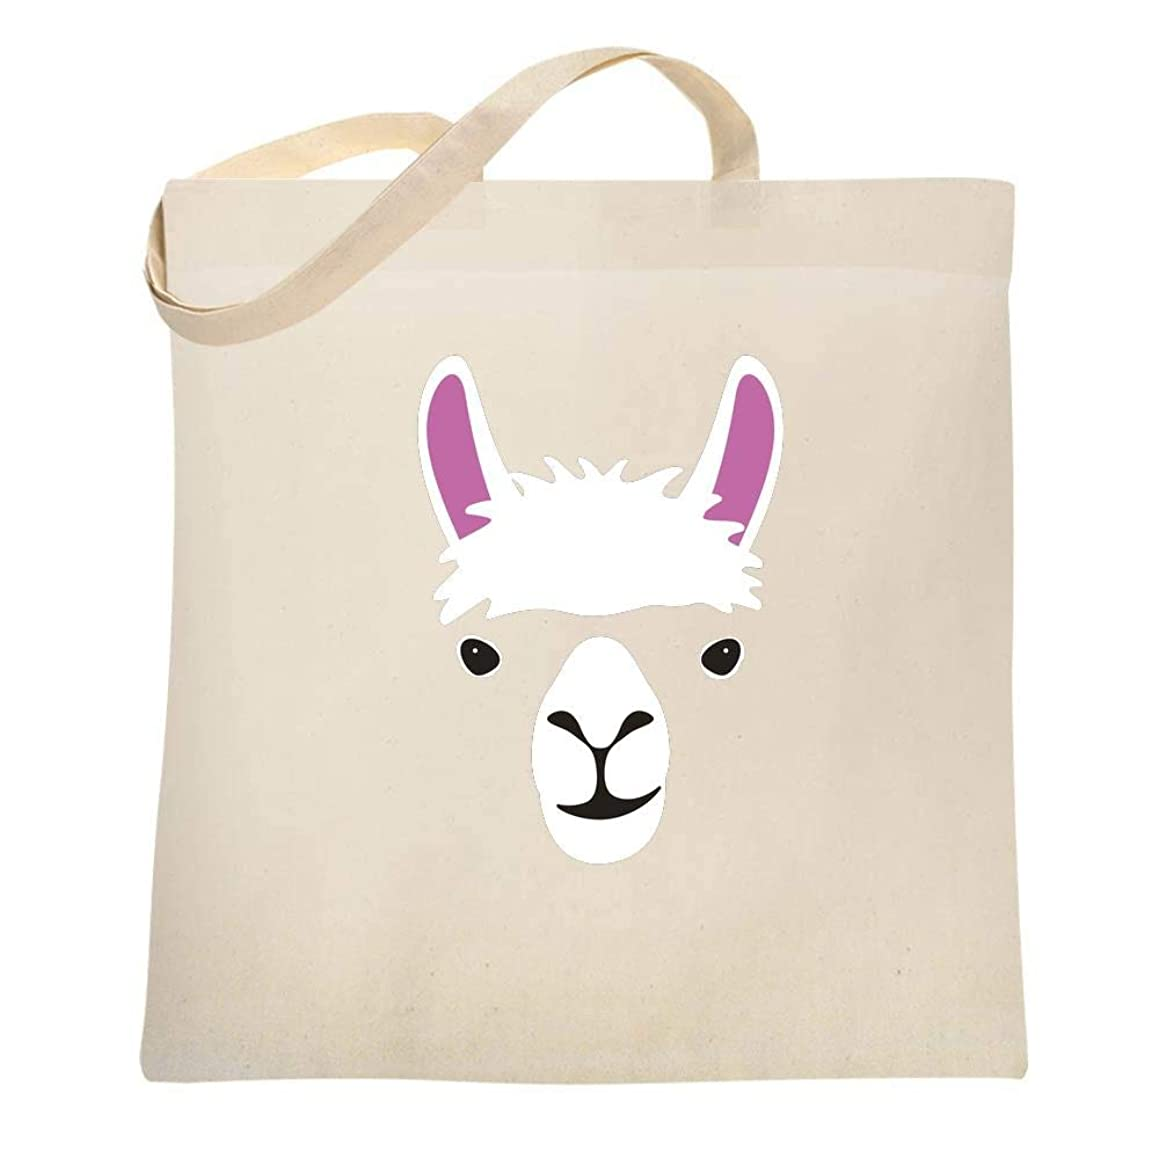 Llama Big Animal Face Cute Funny Canvas Tote Bag